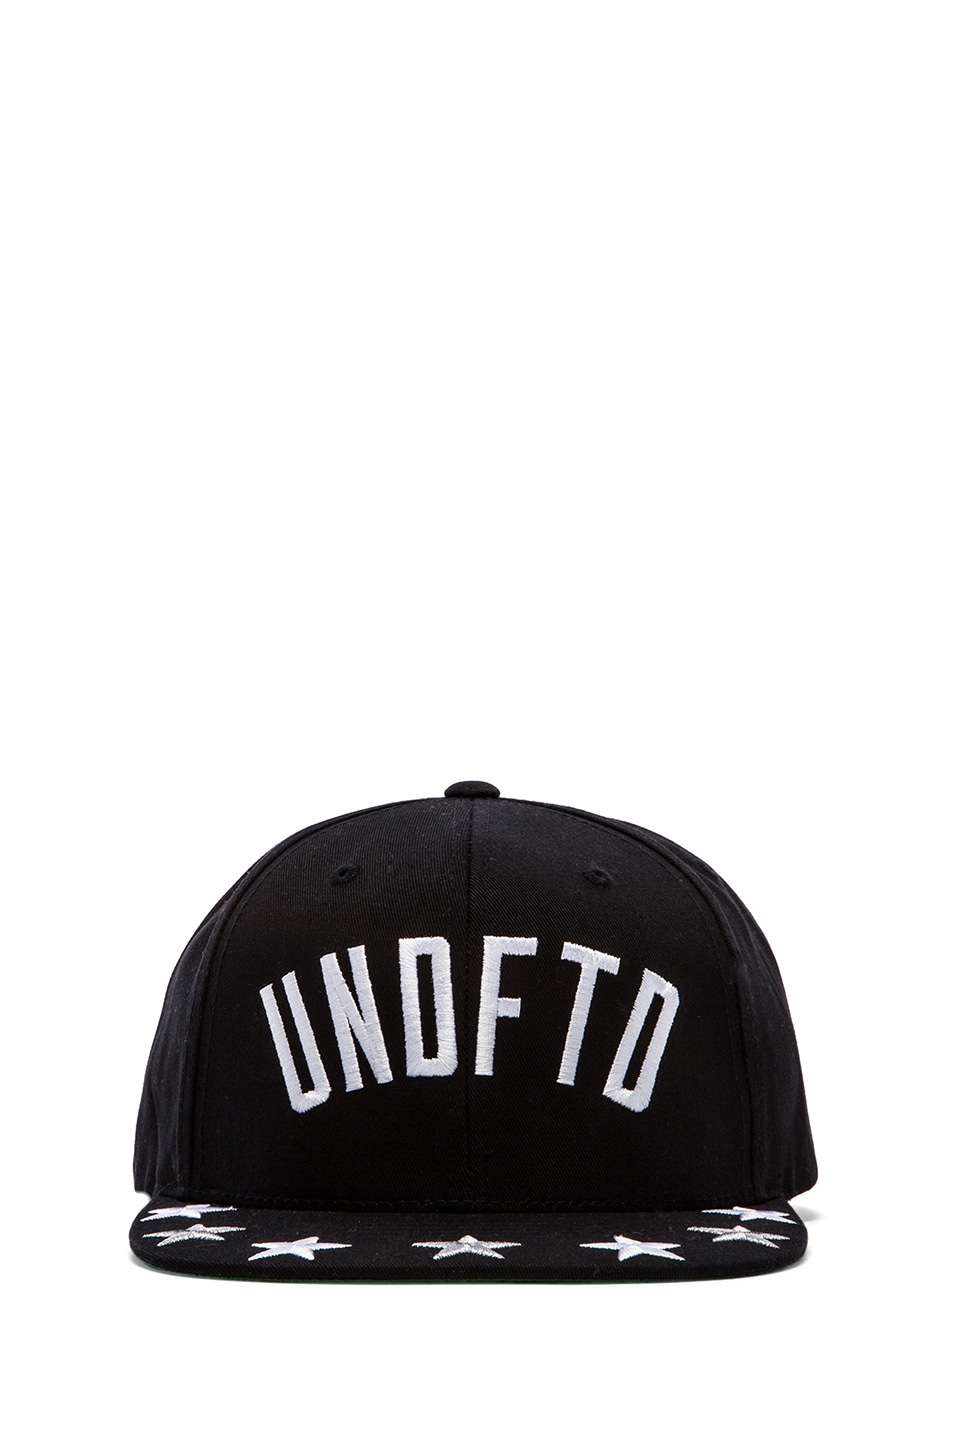 Undefeated Global Starter Snapback in Black